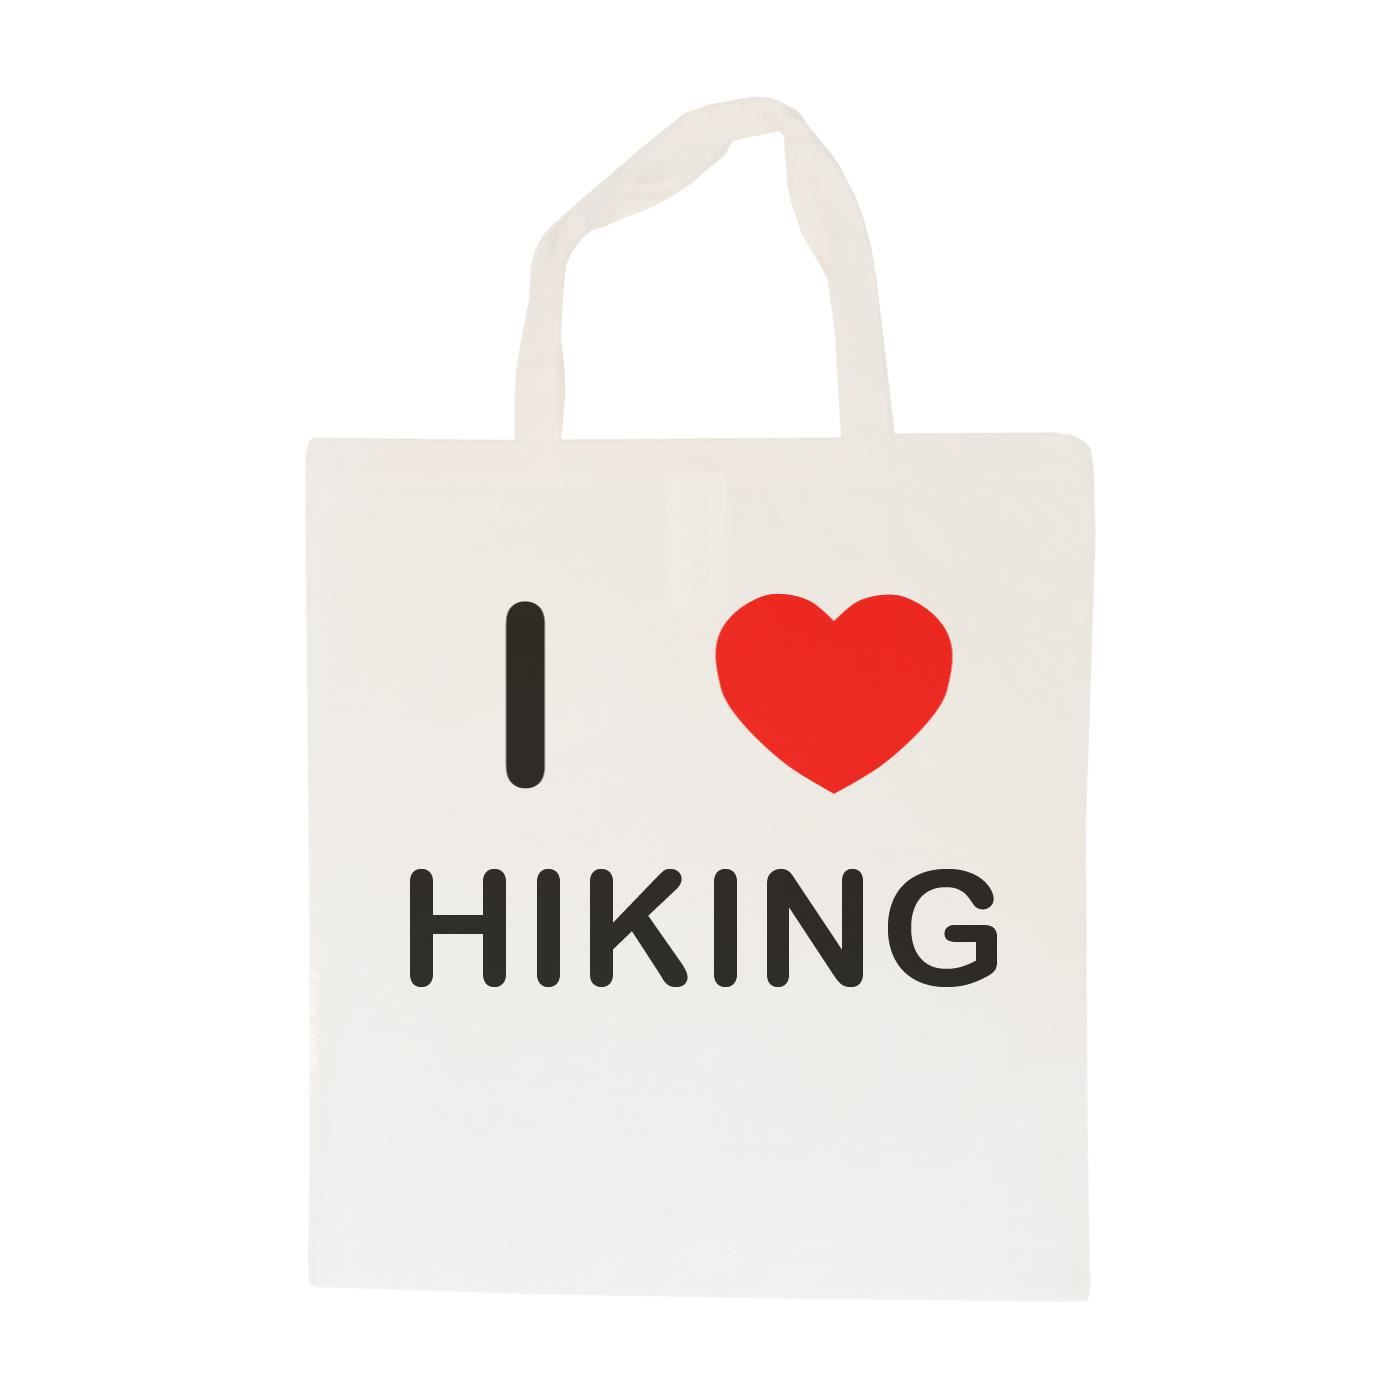 I Love Hiking - Cotton Bag   Size choice Tote, Shopper or Sling